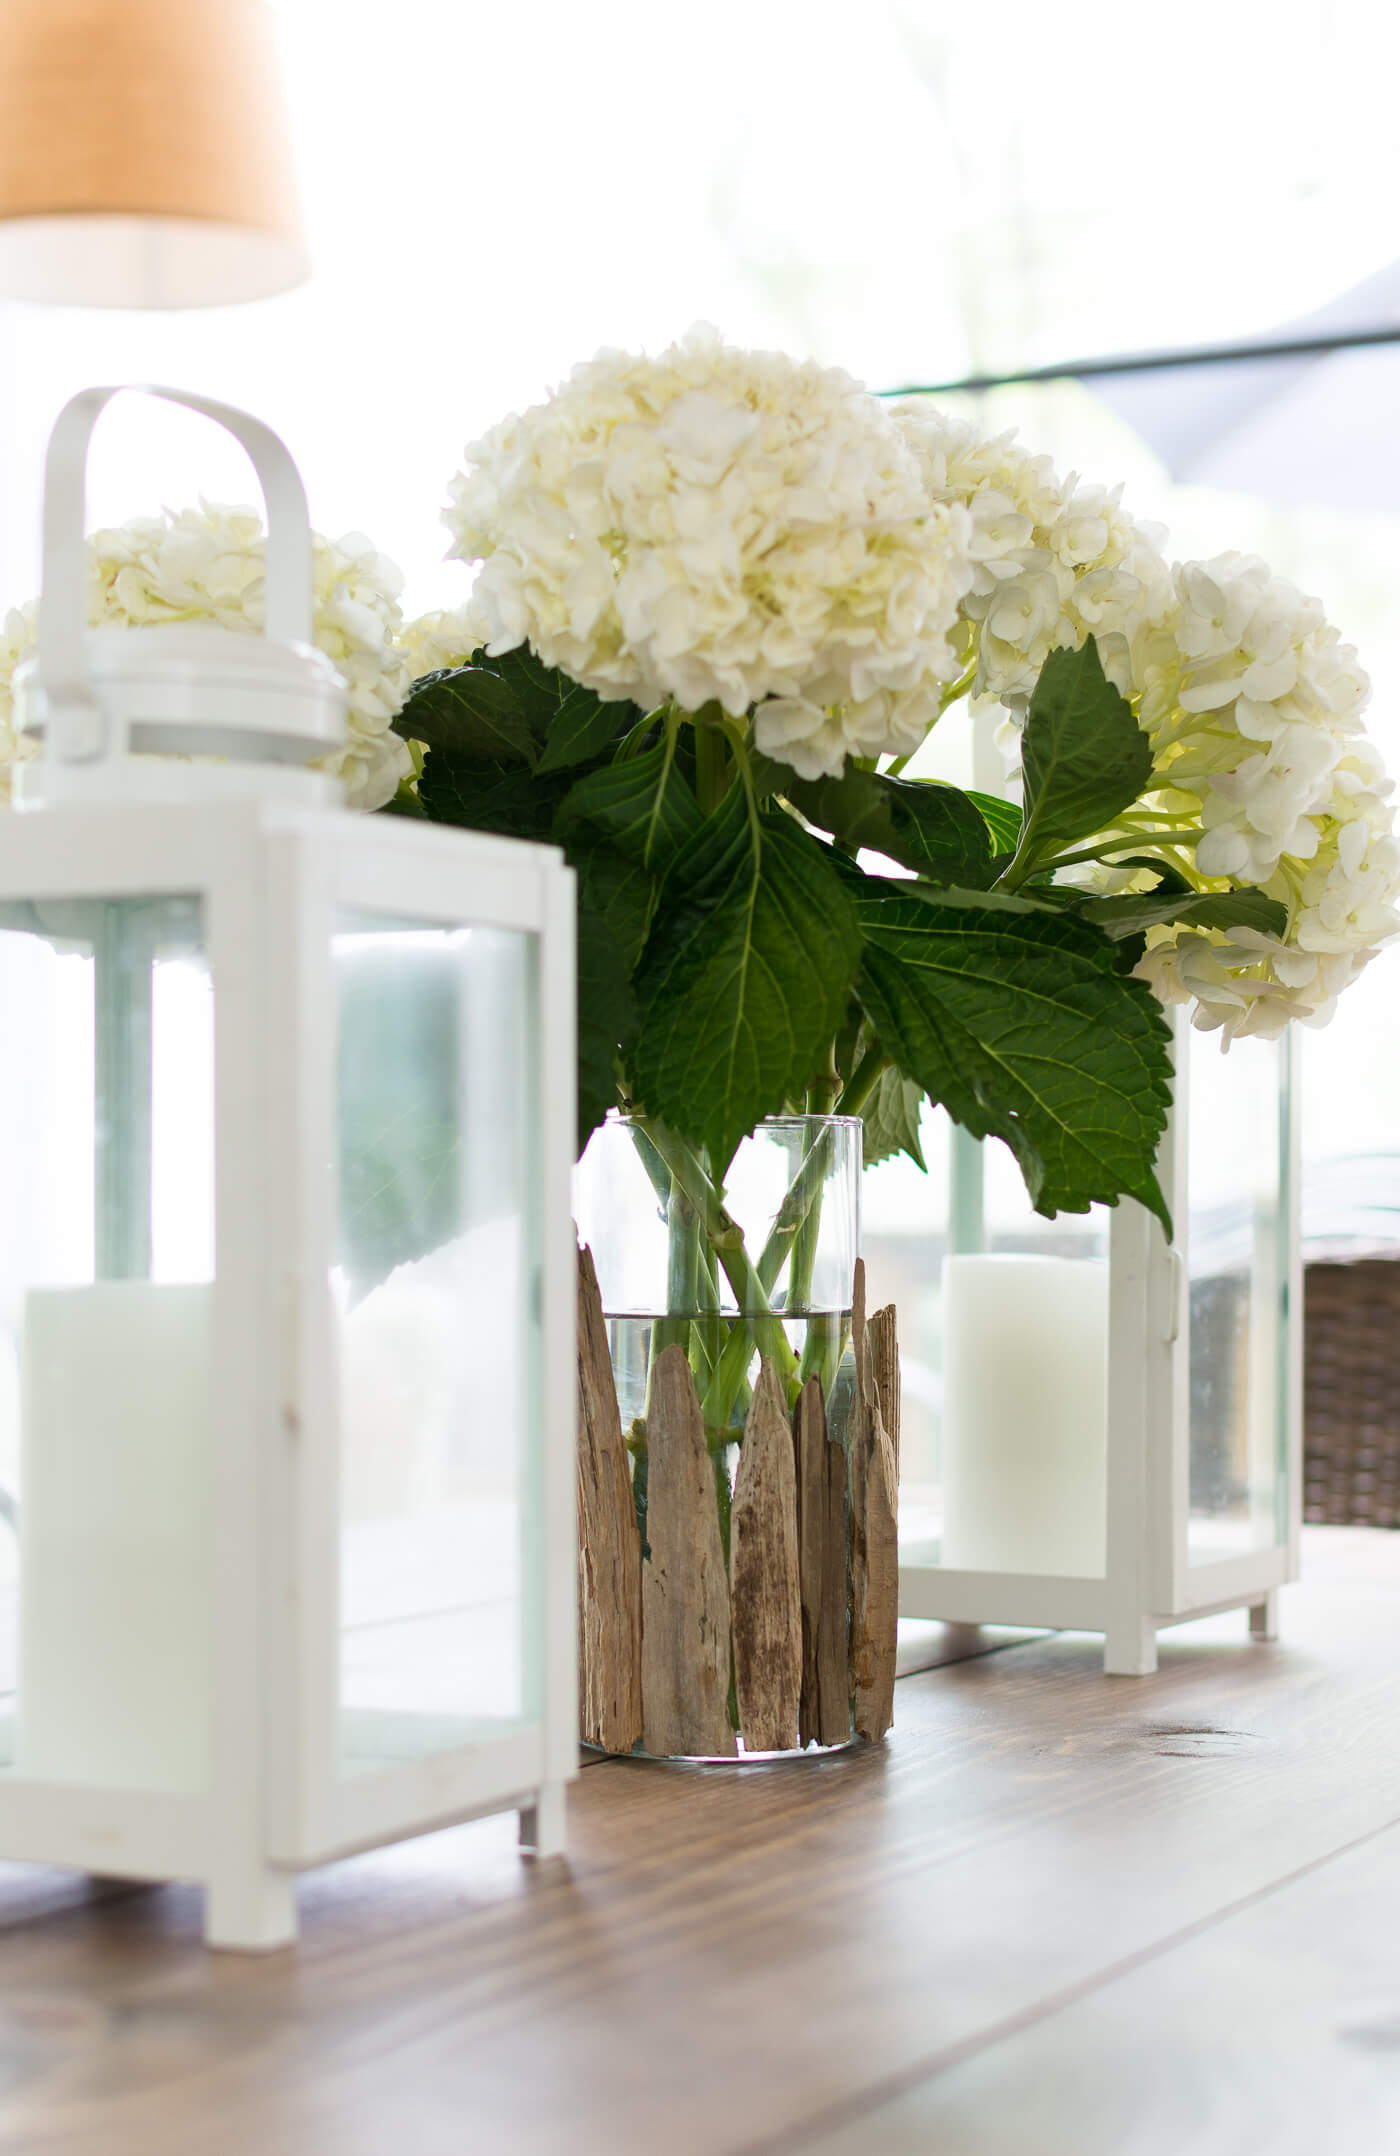 10 Minute DIY Driftwood Vase Project